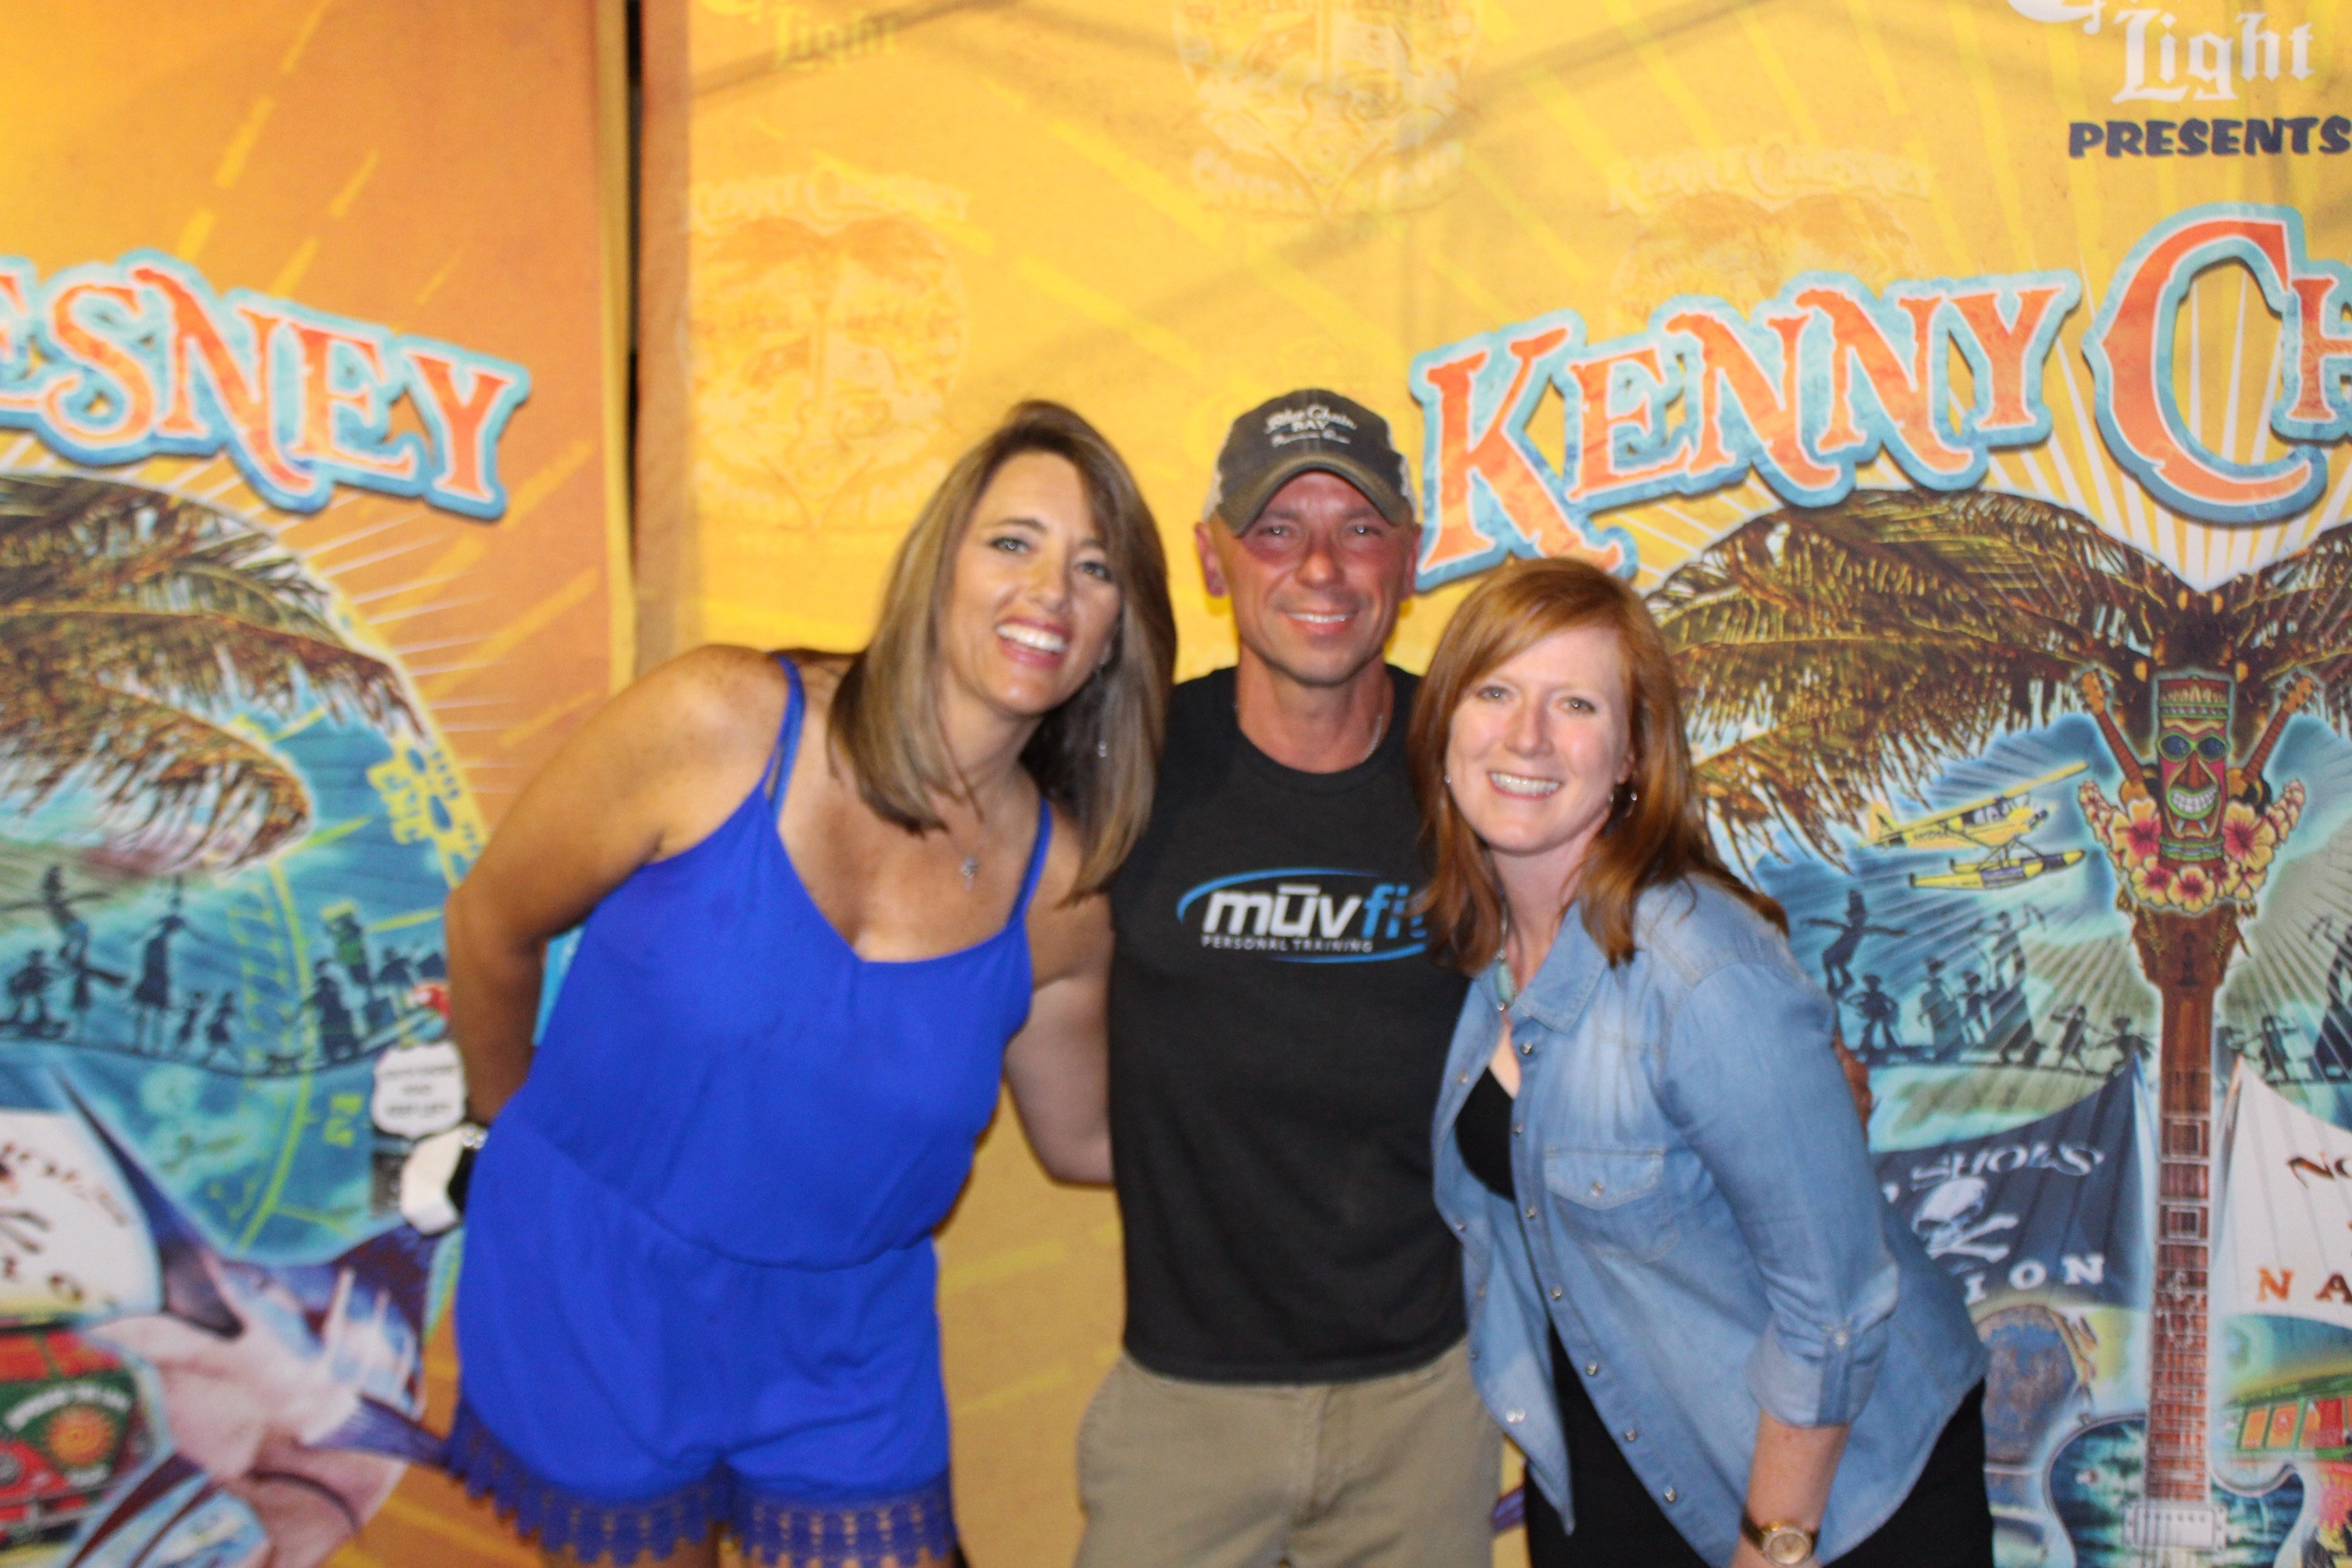 A Kenny Chesney Meet Greet Welcome To The Sandbar Welcome To